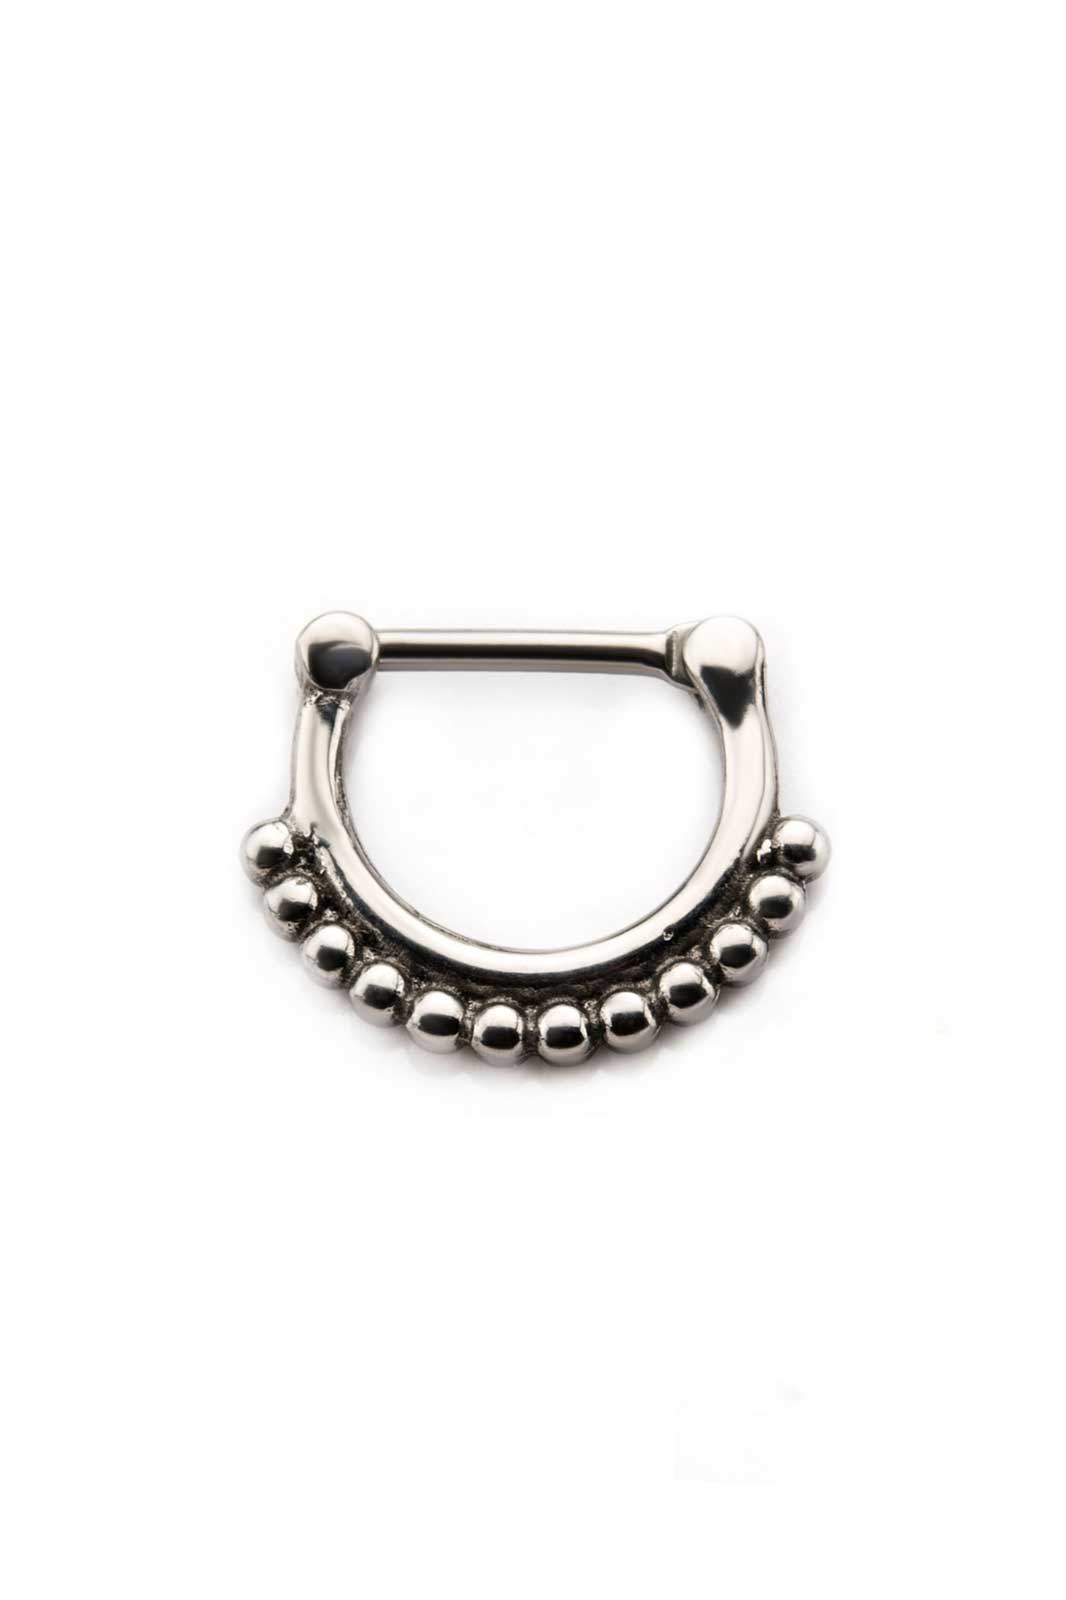 Bead Septum Clicker